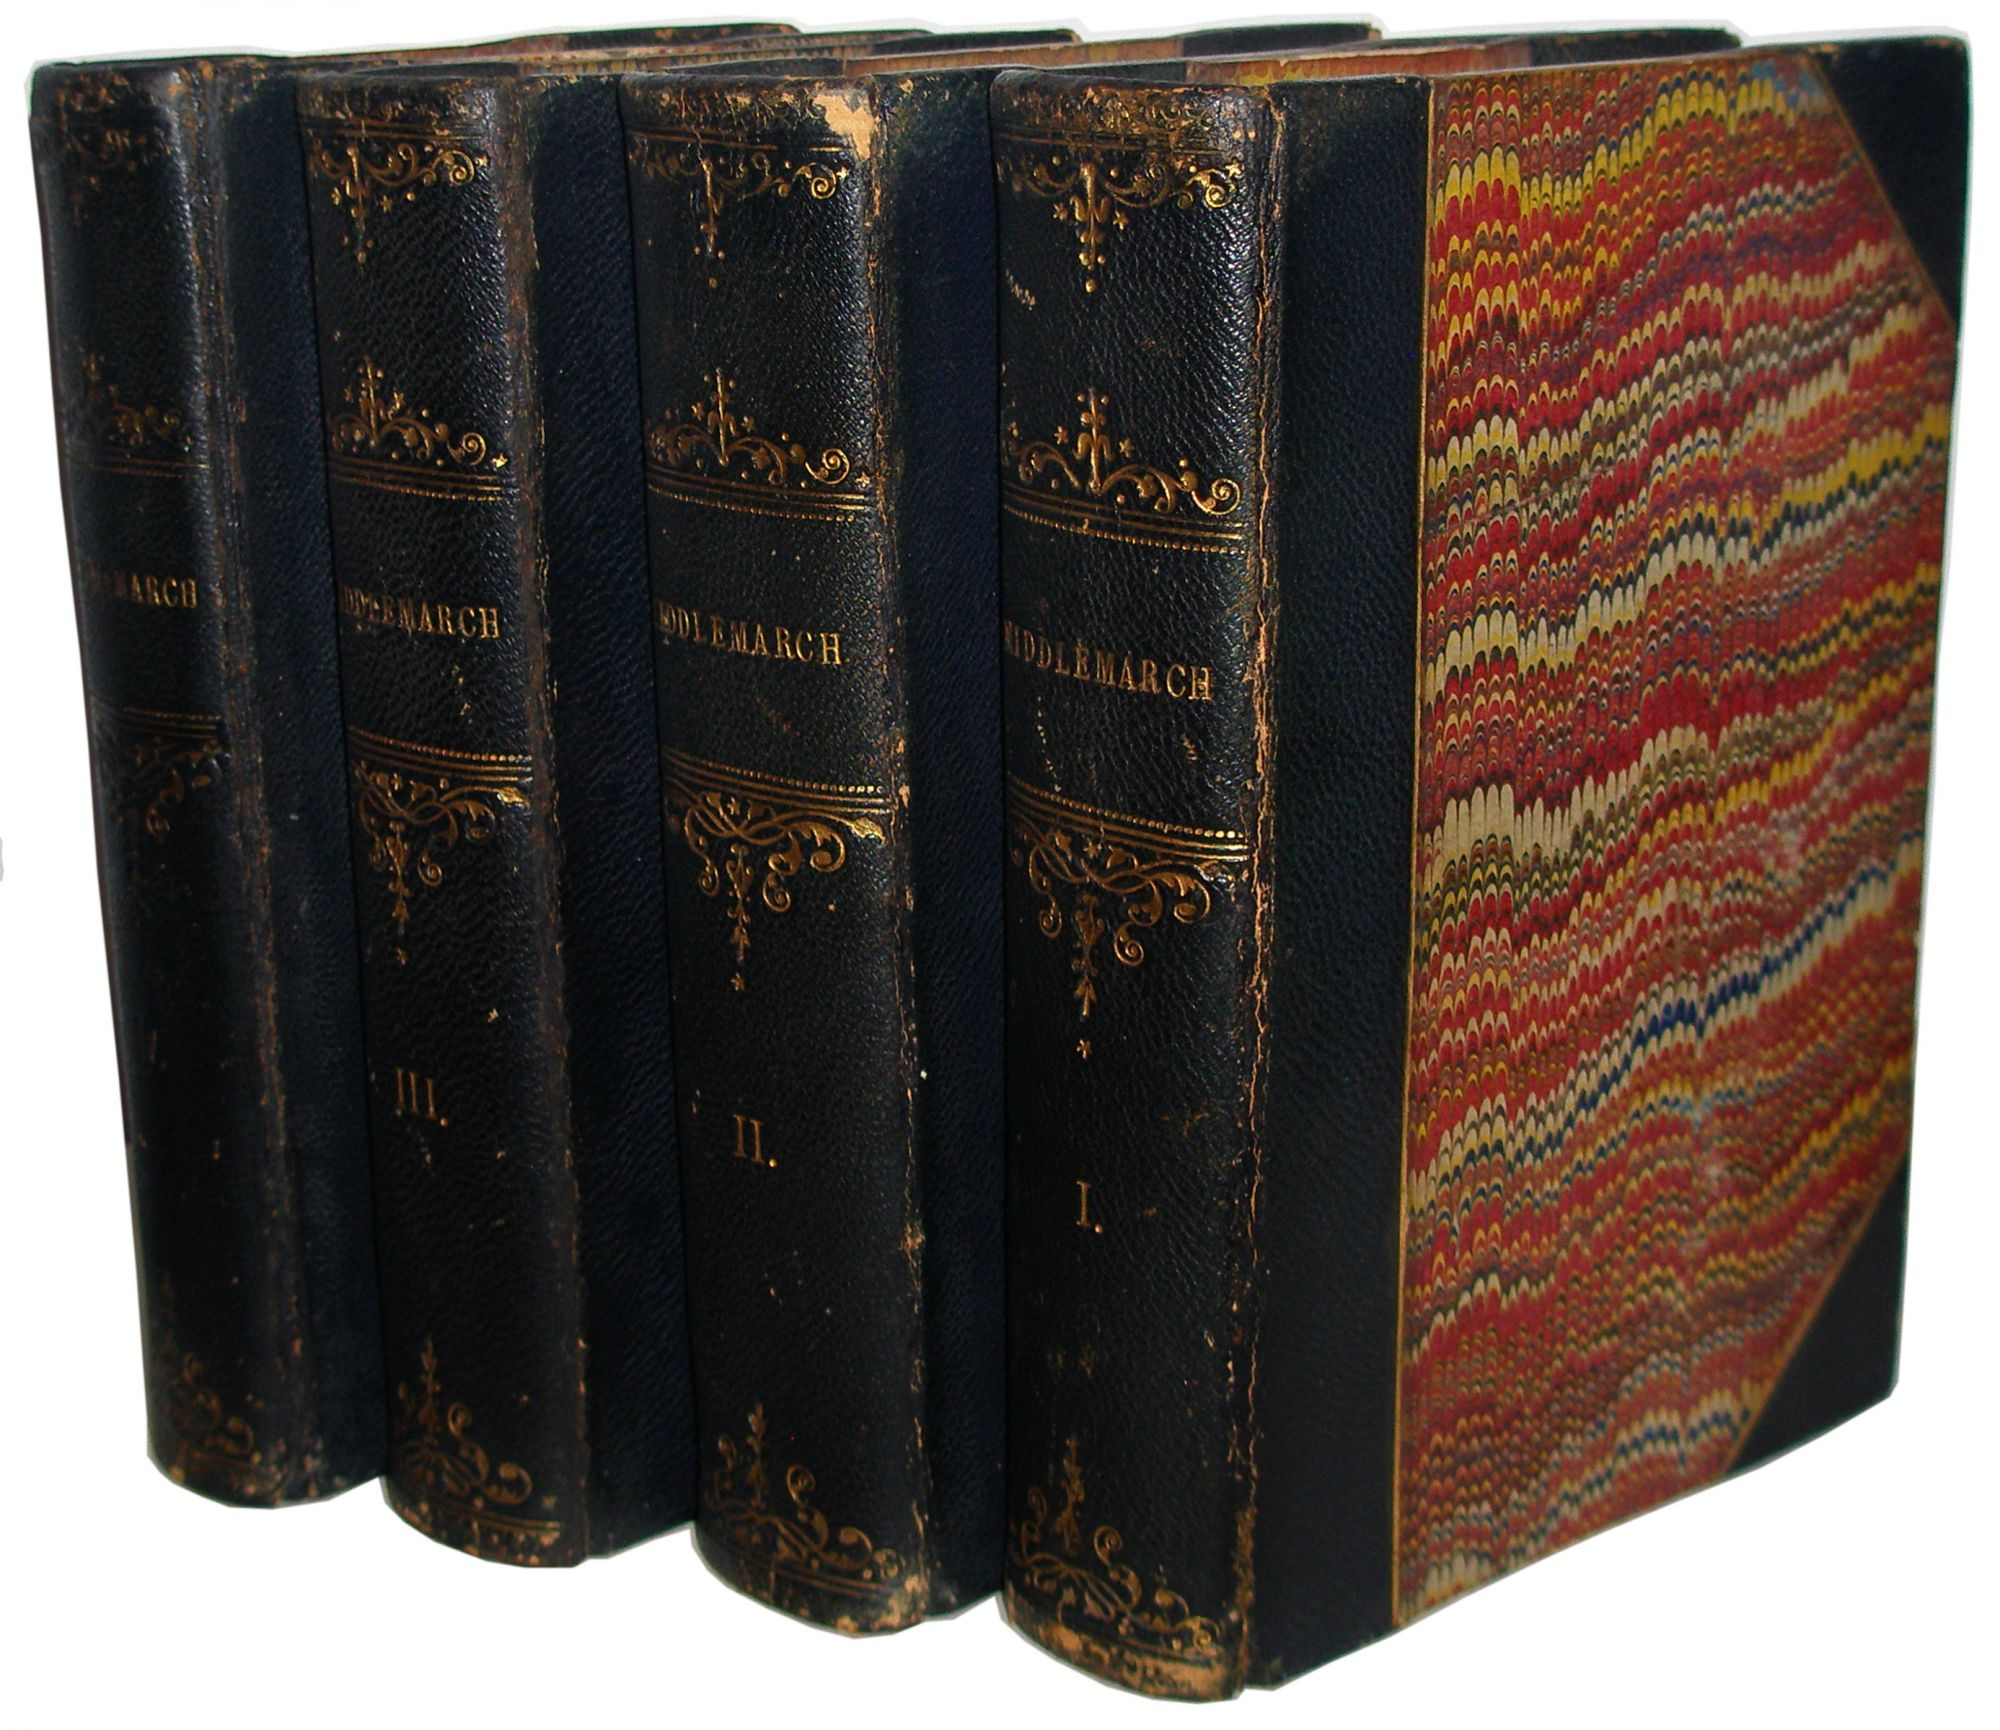 Middlemarch: A Study of Provincial Life - George Eliot - 1st